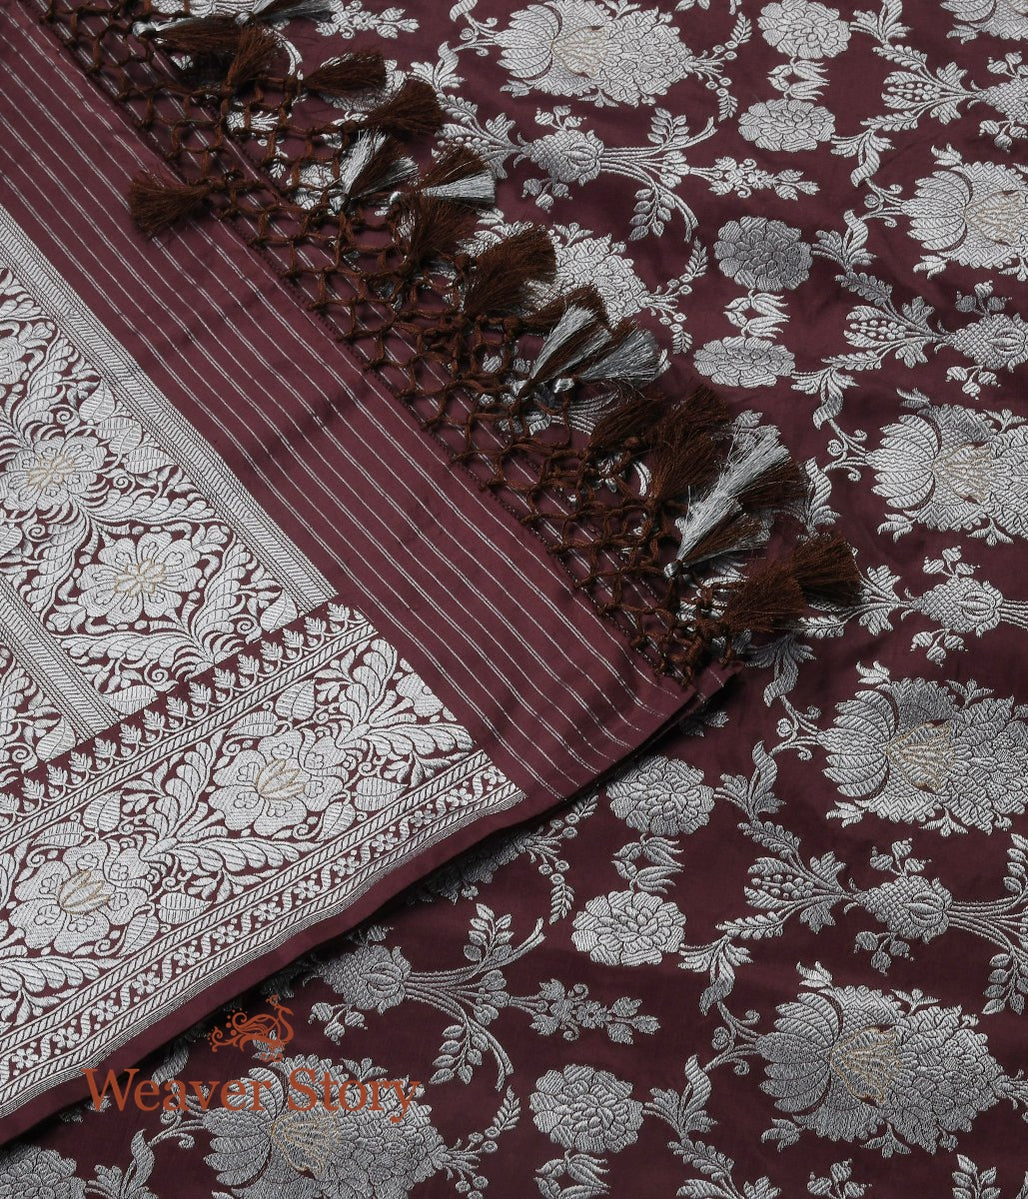 Handwoven Brown Kadhwa Jangla Dupatta with Silver Zari